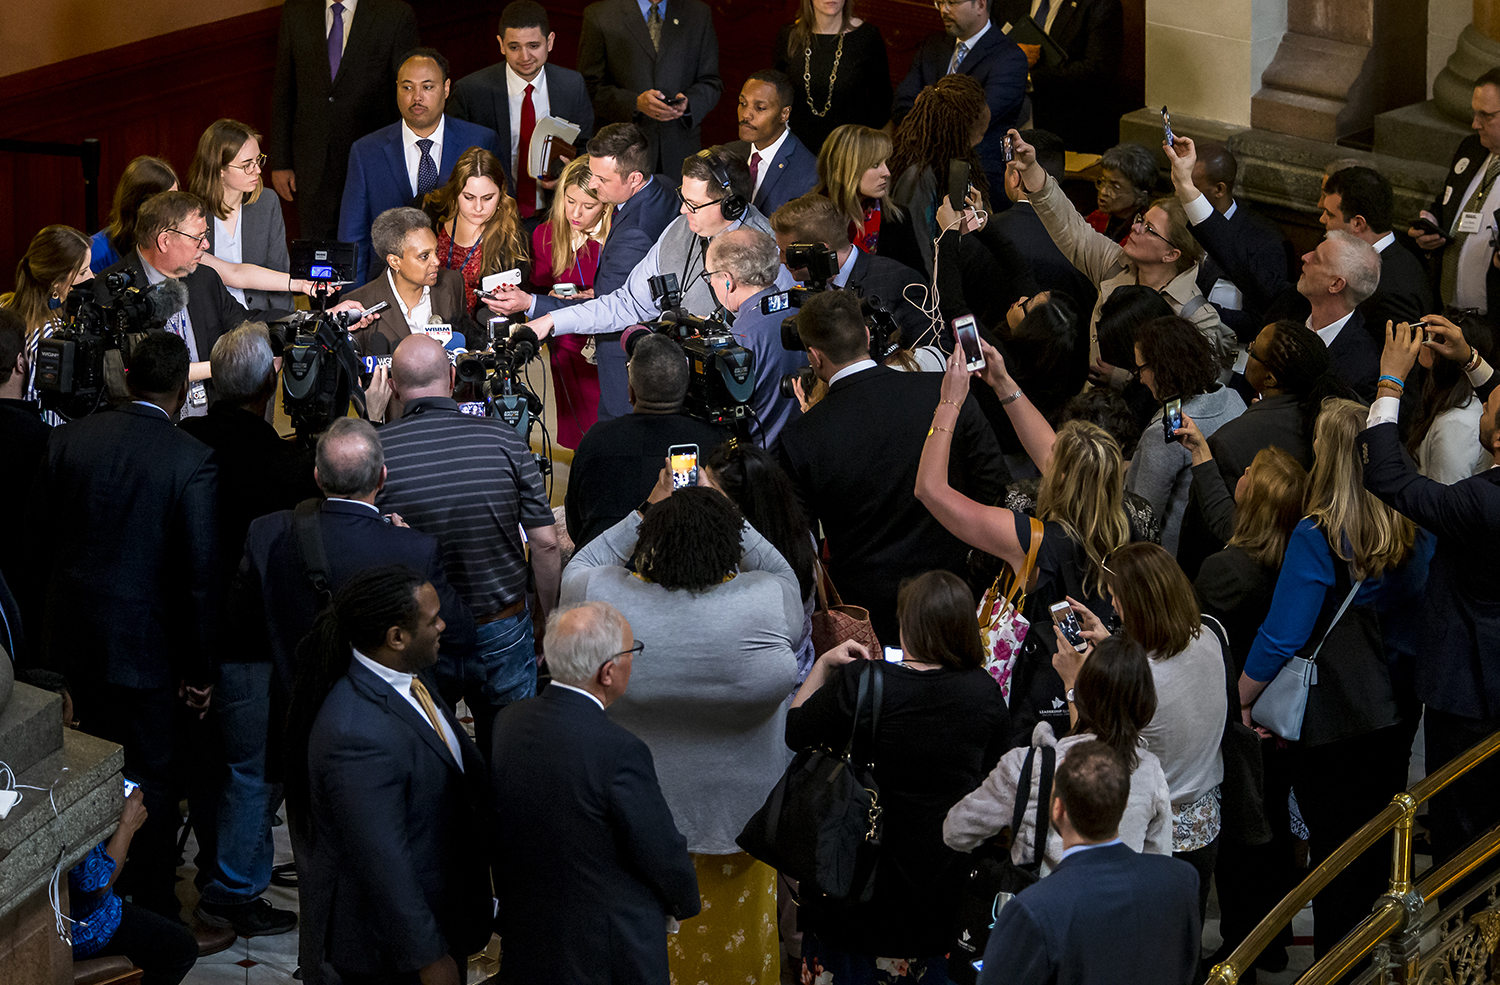 Chicago Mayor-elect Lori Lightfoot answers questions from the media as members of the public take photos with their cellphones in the rotunda at the Illinois State Capitol, Wednesday, April 10, 2019, in Springfield, Ill. [Justin L. Fowler/The State Journal-Register]